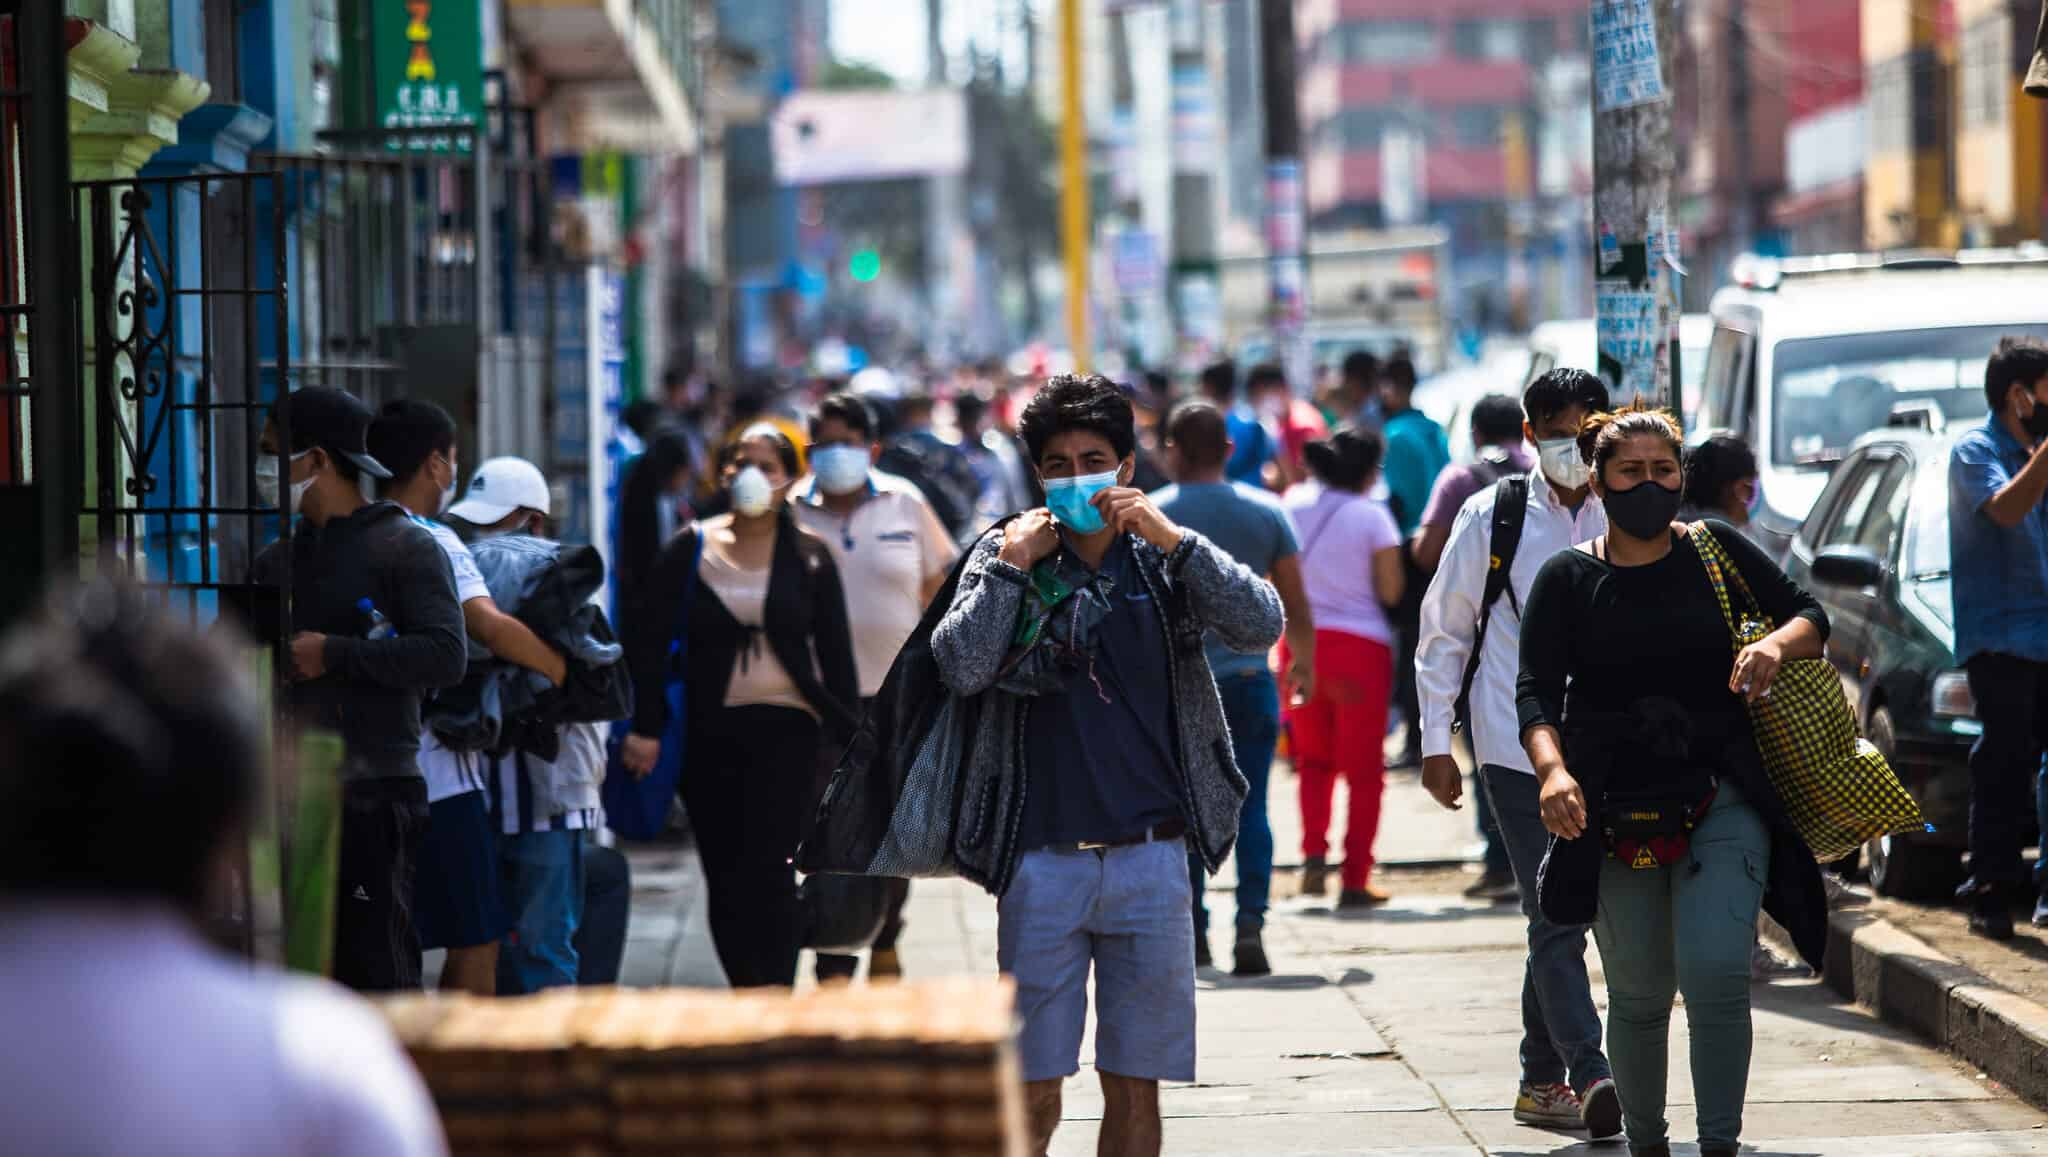 People walk down the sidewalk in a city - most are wearing face masks.